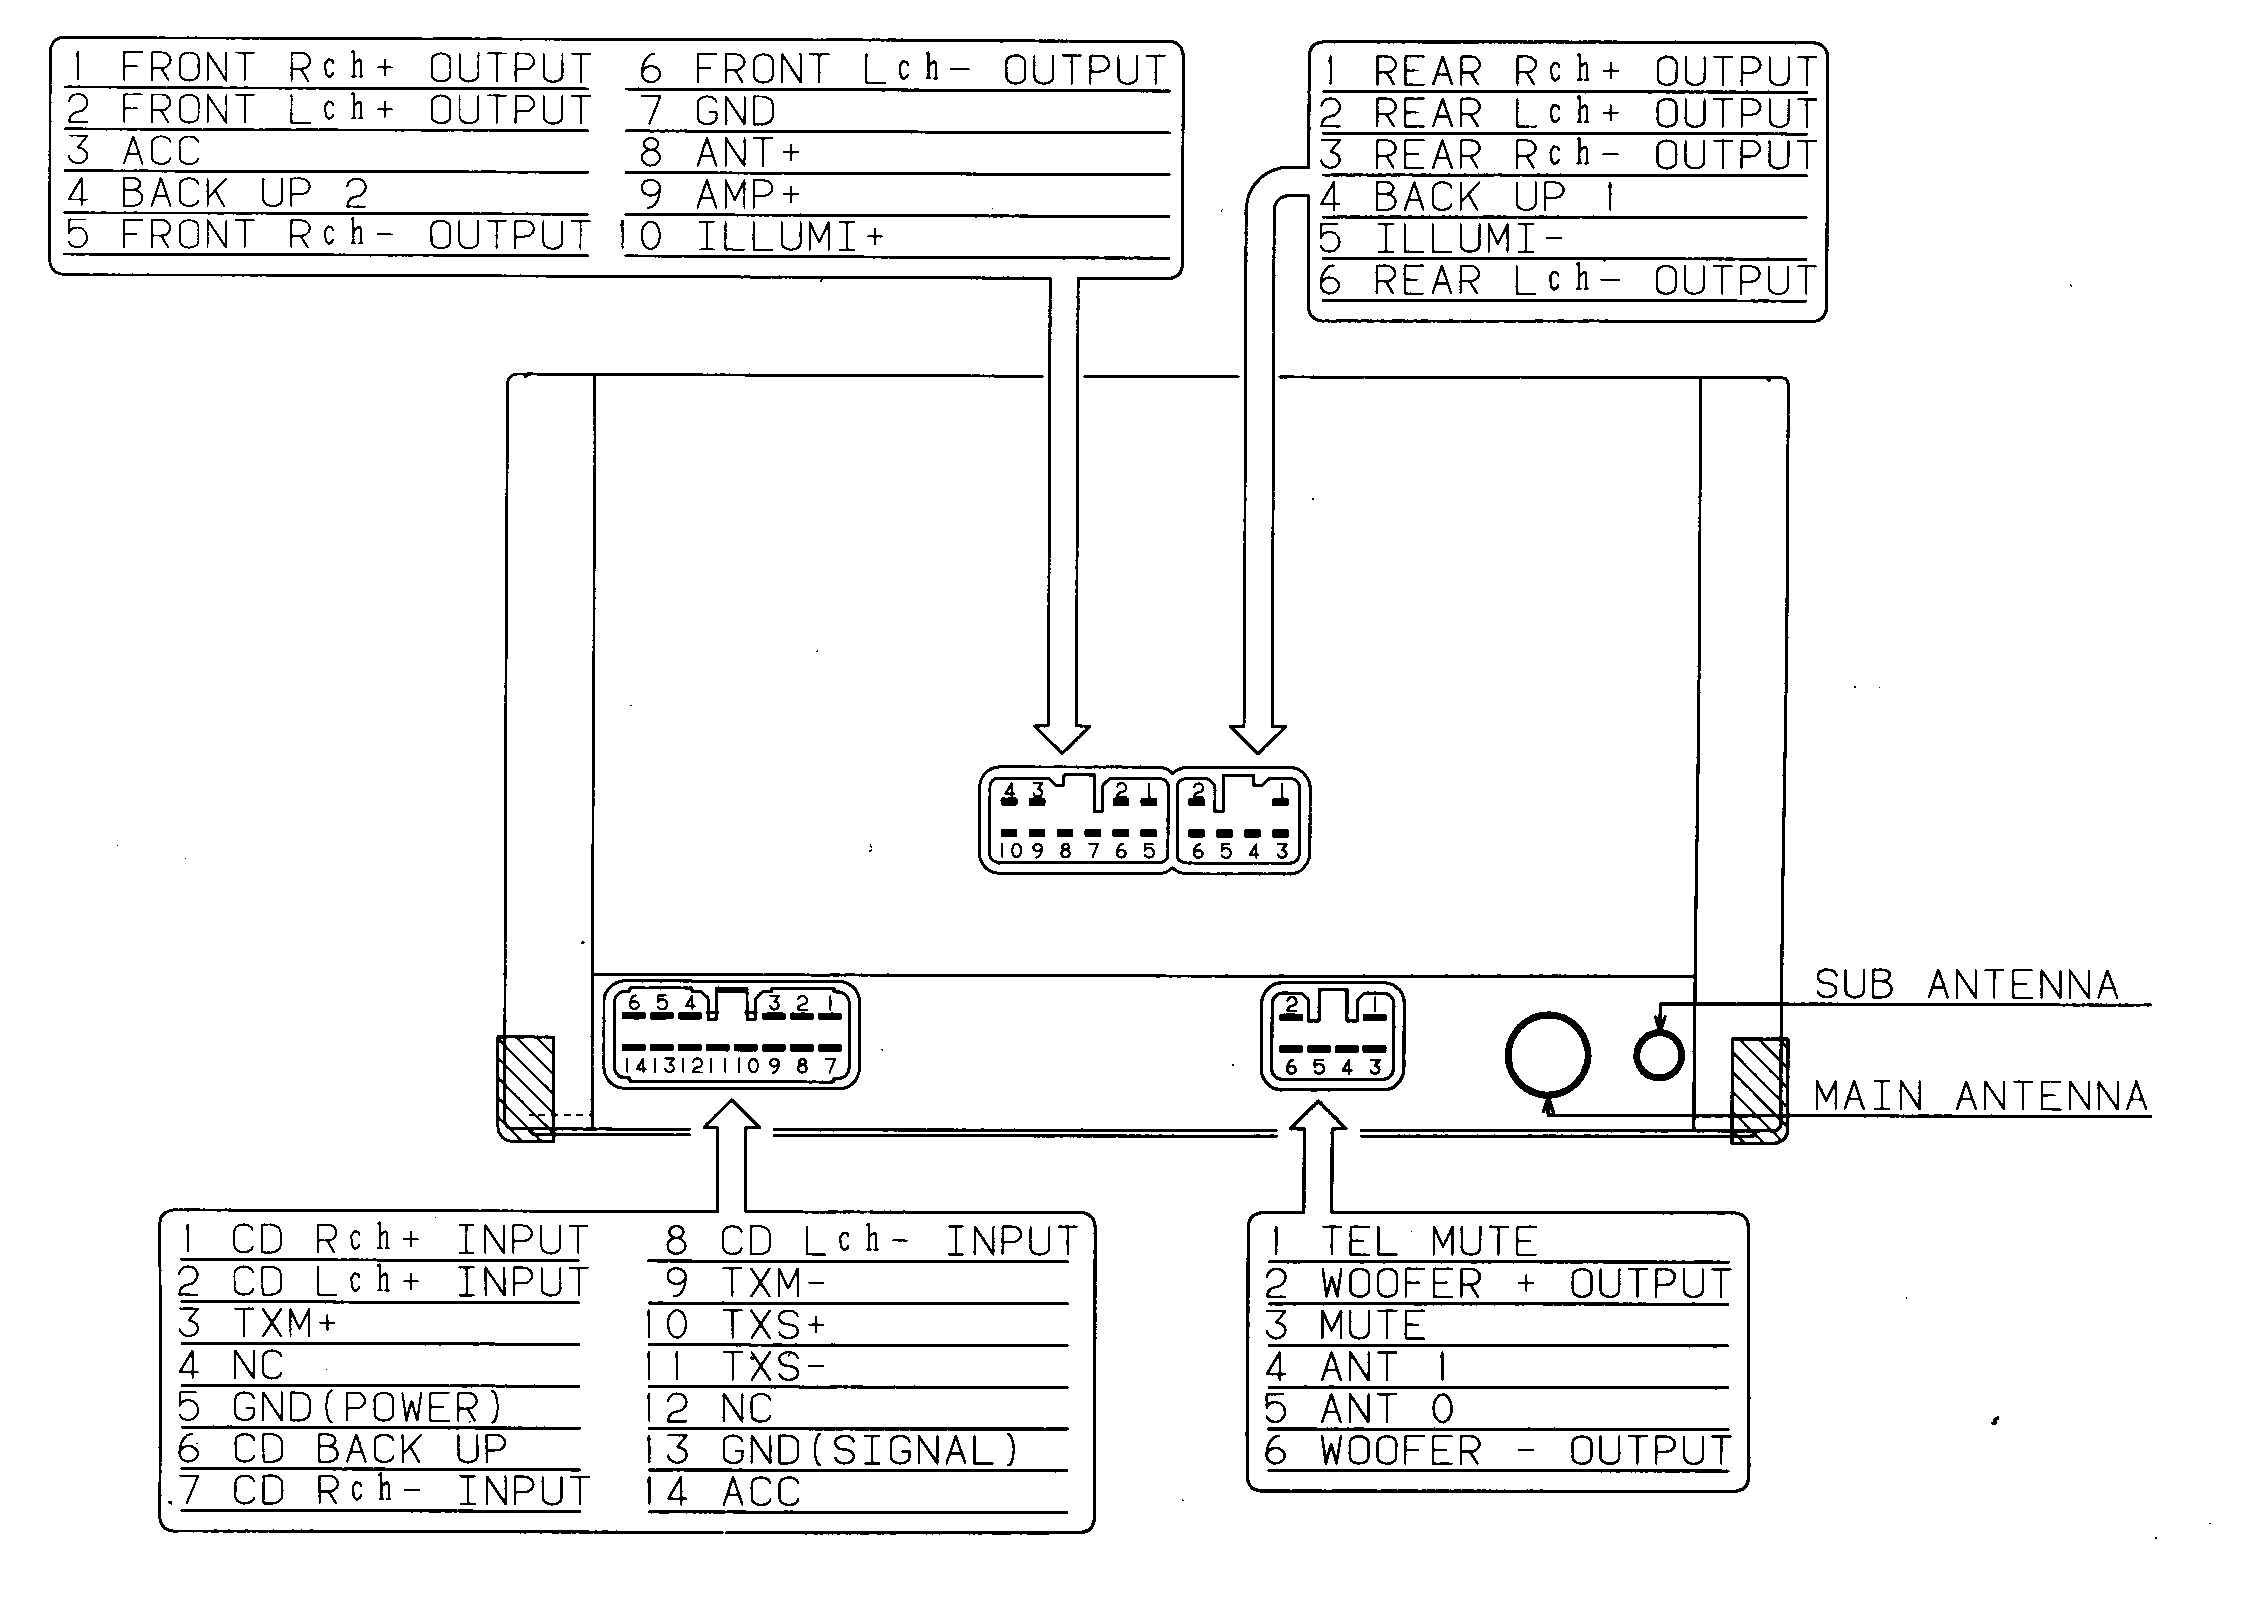 Lexus car stereo wiring diagram harness pinout connector wire nissan almera ecu pinout nissan tps wiring diagram with template Lexus SC300 Engine at fashall.co